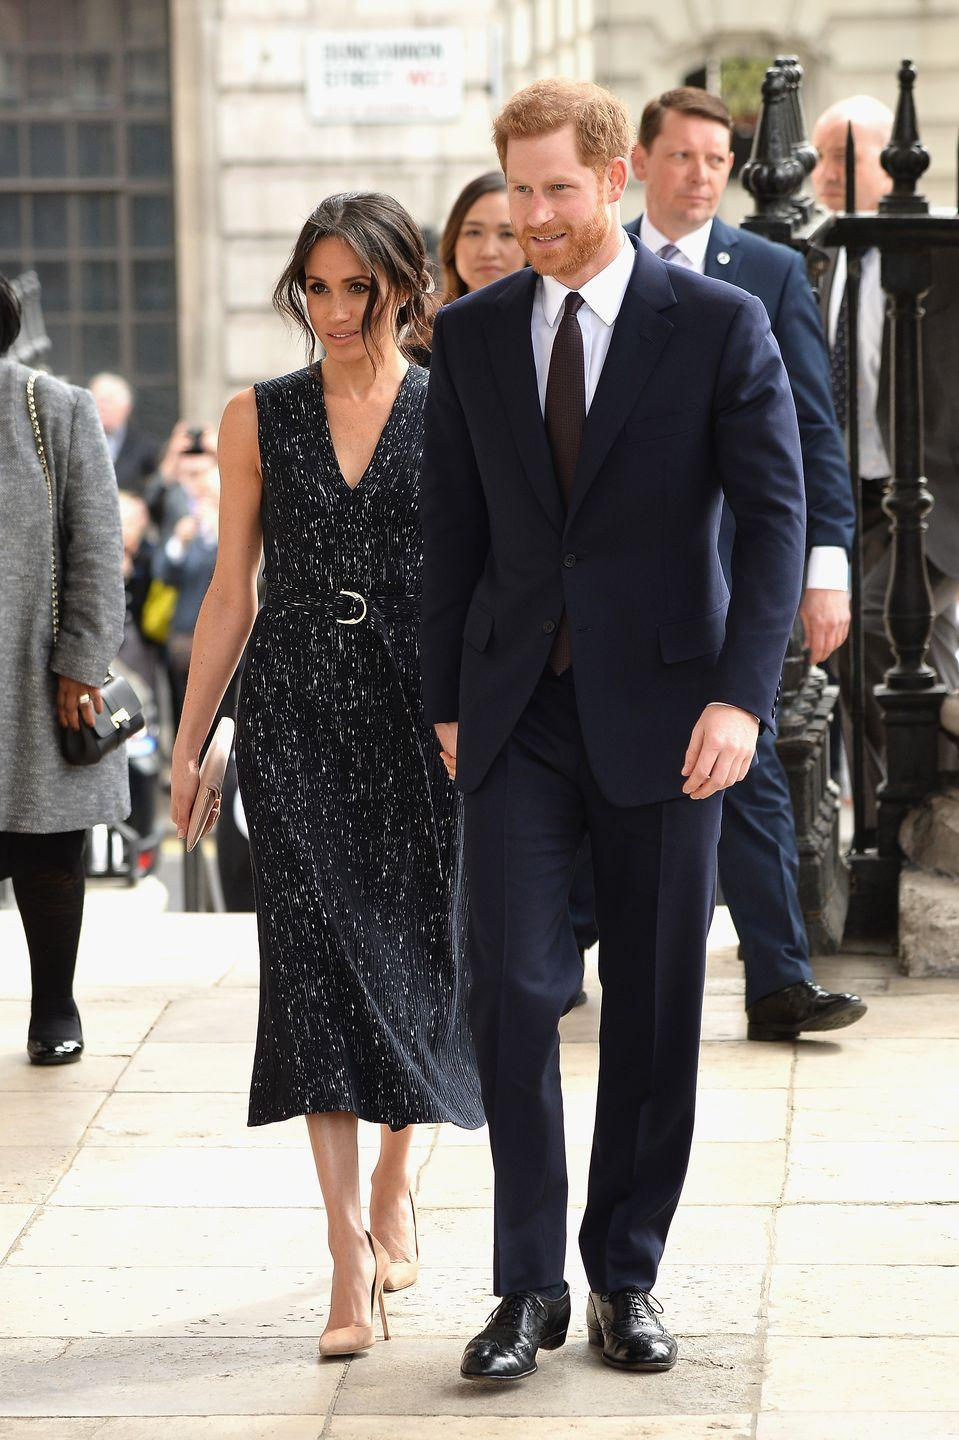 """<p>Meghan chose a black dress by Hugo Boss for a somber event in London: <a href=""""https://www.townandcountrymag.com/society/tradition/a19889435/meghan-markle-black-dress-stephen-lawrence-memorial/"""" rel=""""nofollow noopener"""" target=""""_blank"""" data-ylk=""""slk:a memorial service to mark the 25th anniversary"""" class=""""link rapid-noclick-resp"""">a memorial service to mark the 25th anniversary</a> of Stephen Lawrence's murder. The soon-to-be royal completed the look with a pair of Manolo Blahnik pumps. </p><p><a class=""""link rapid-noclick-resp"""" href=""""https://go.redirectingat.com?id=74968X1596630&url=https%3A%2F%2Fwww.saksfifthavenue.com%2Fmain%2FProductDetail.jsp%3FPRODUCT%253C%253Eprd_id%3D845524446412984&sref=https%3A%2F%2Fwww.townandcountrymag.com%2Fstyle%2Ffashion-trends%2Fg3272%2Fmeghan-markle-preppy-style%2F"""" rel=""""nofollow noopener"""" target=""""_blank"""" data-ylk=""""slk:SHOP NOW"""">SHOP NOW</a> <em>Manolo Blahnik BB 105 Suede Point Toe Pumps, $595</em><br></p>"""